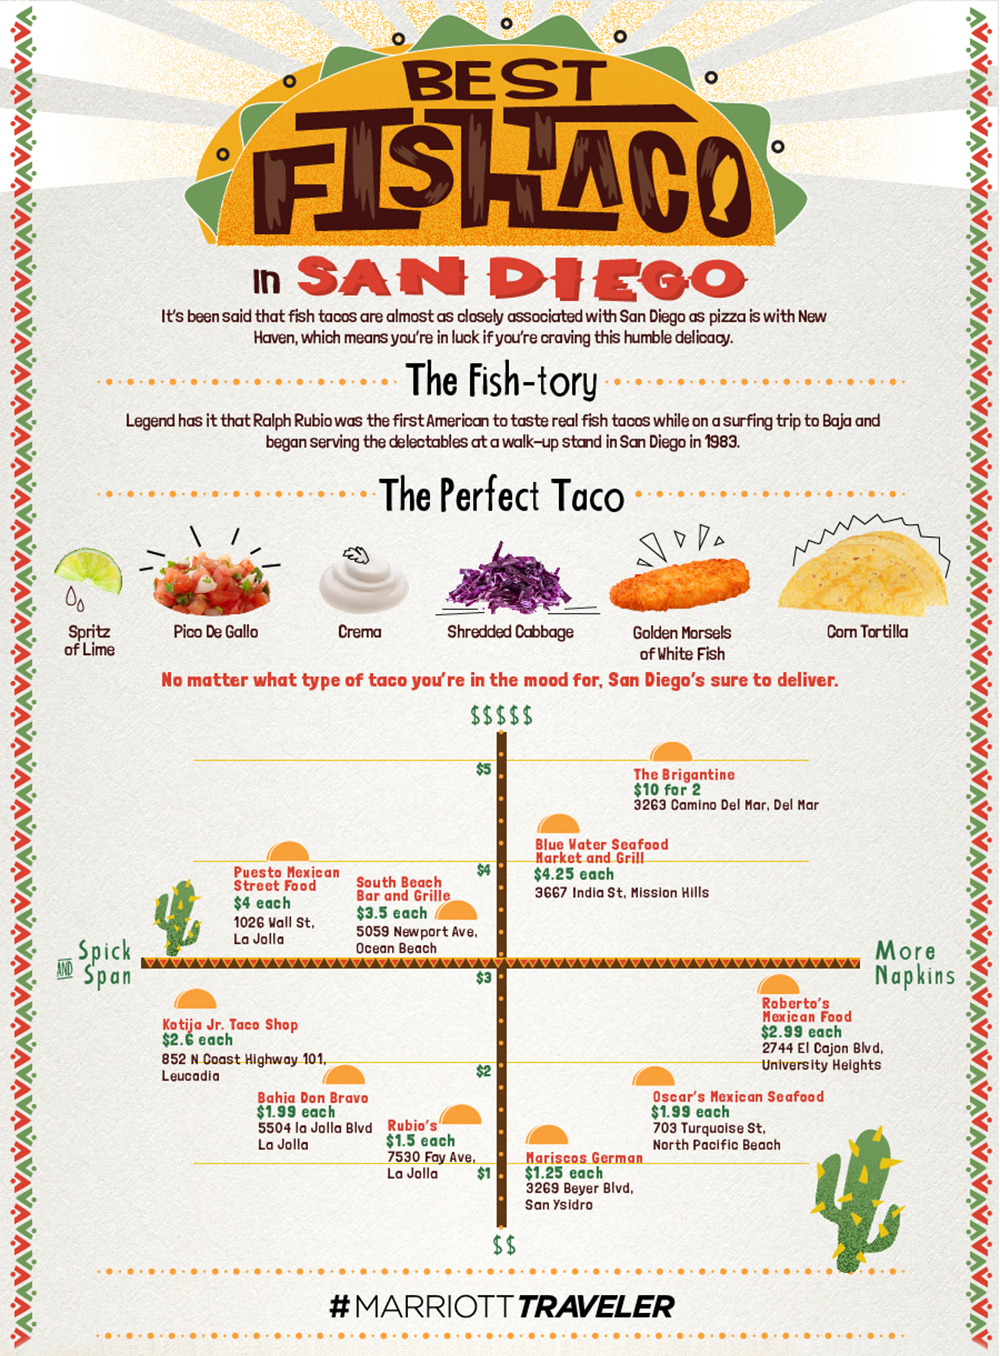 best fish taco in san diego